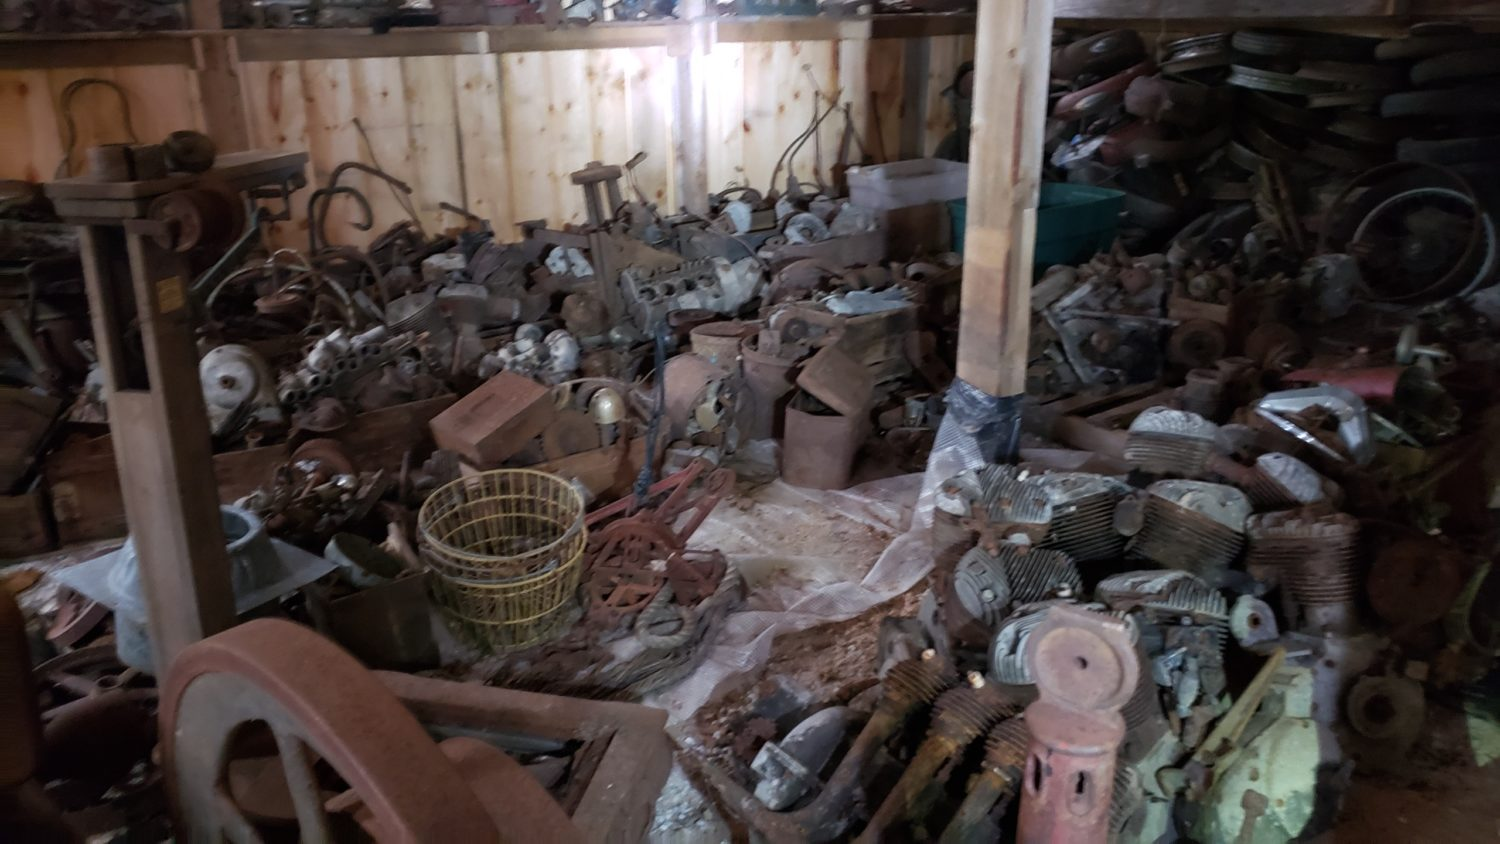 AMAZING Indian Motorcycle Hoard, Race Cars, Collector Car, Collectibles & More!  - image 7